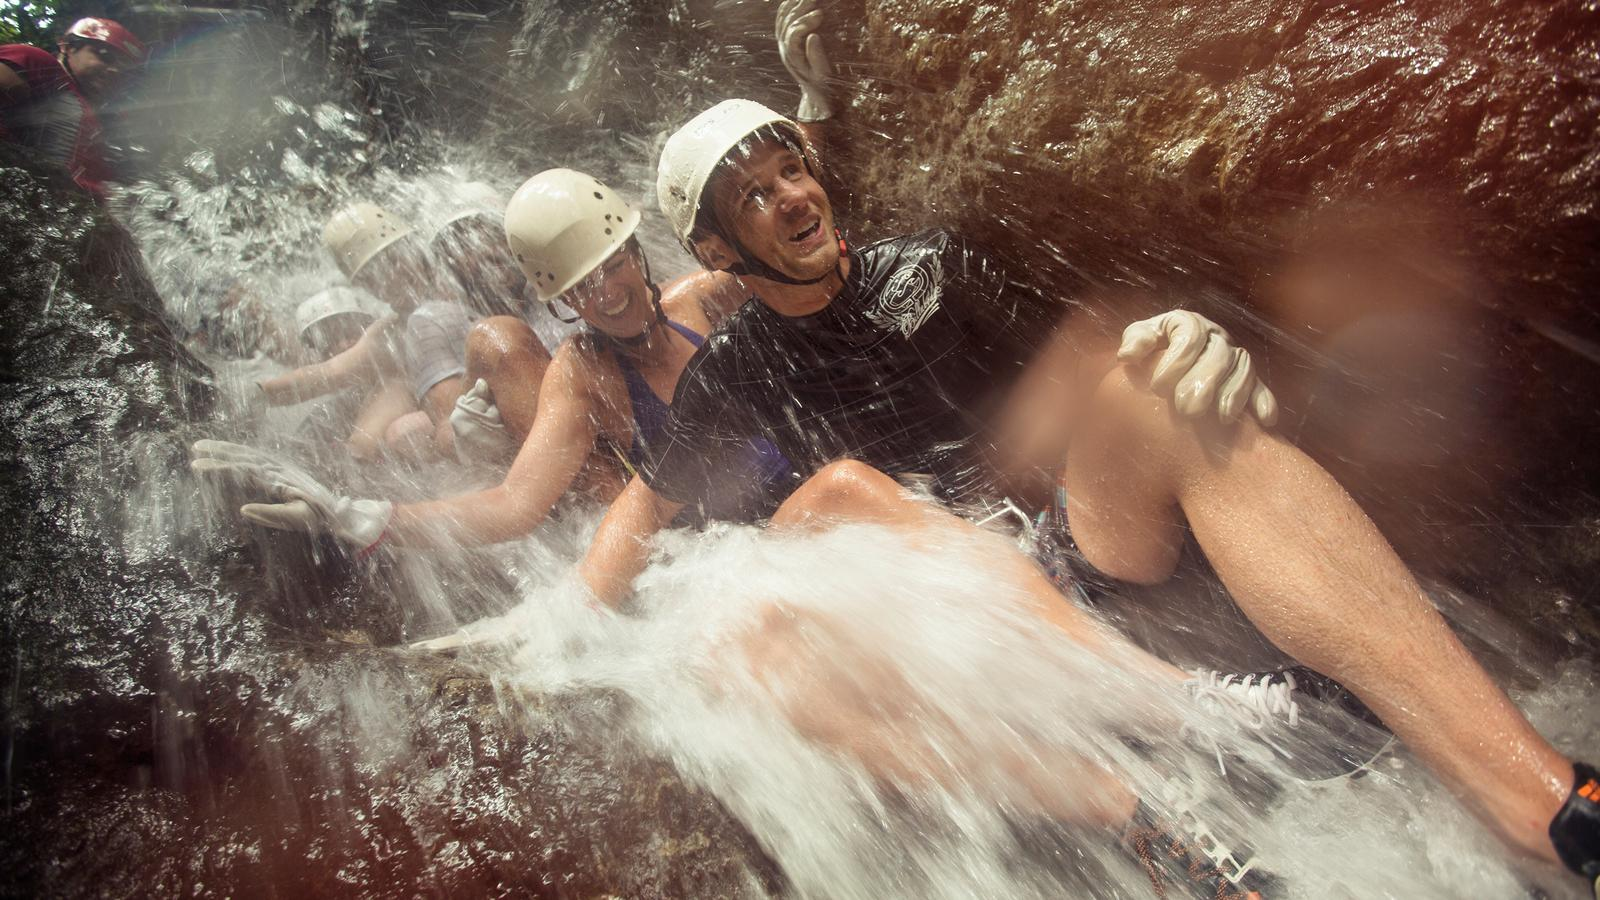 A group of travellers canyoneering down a waterfall in Costa Rica